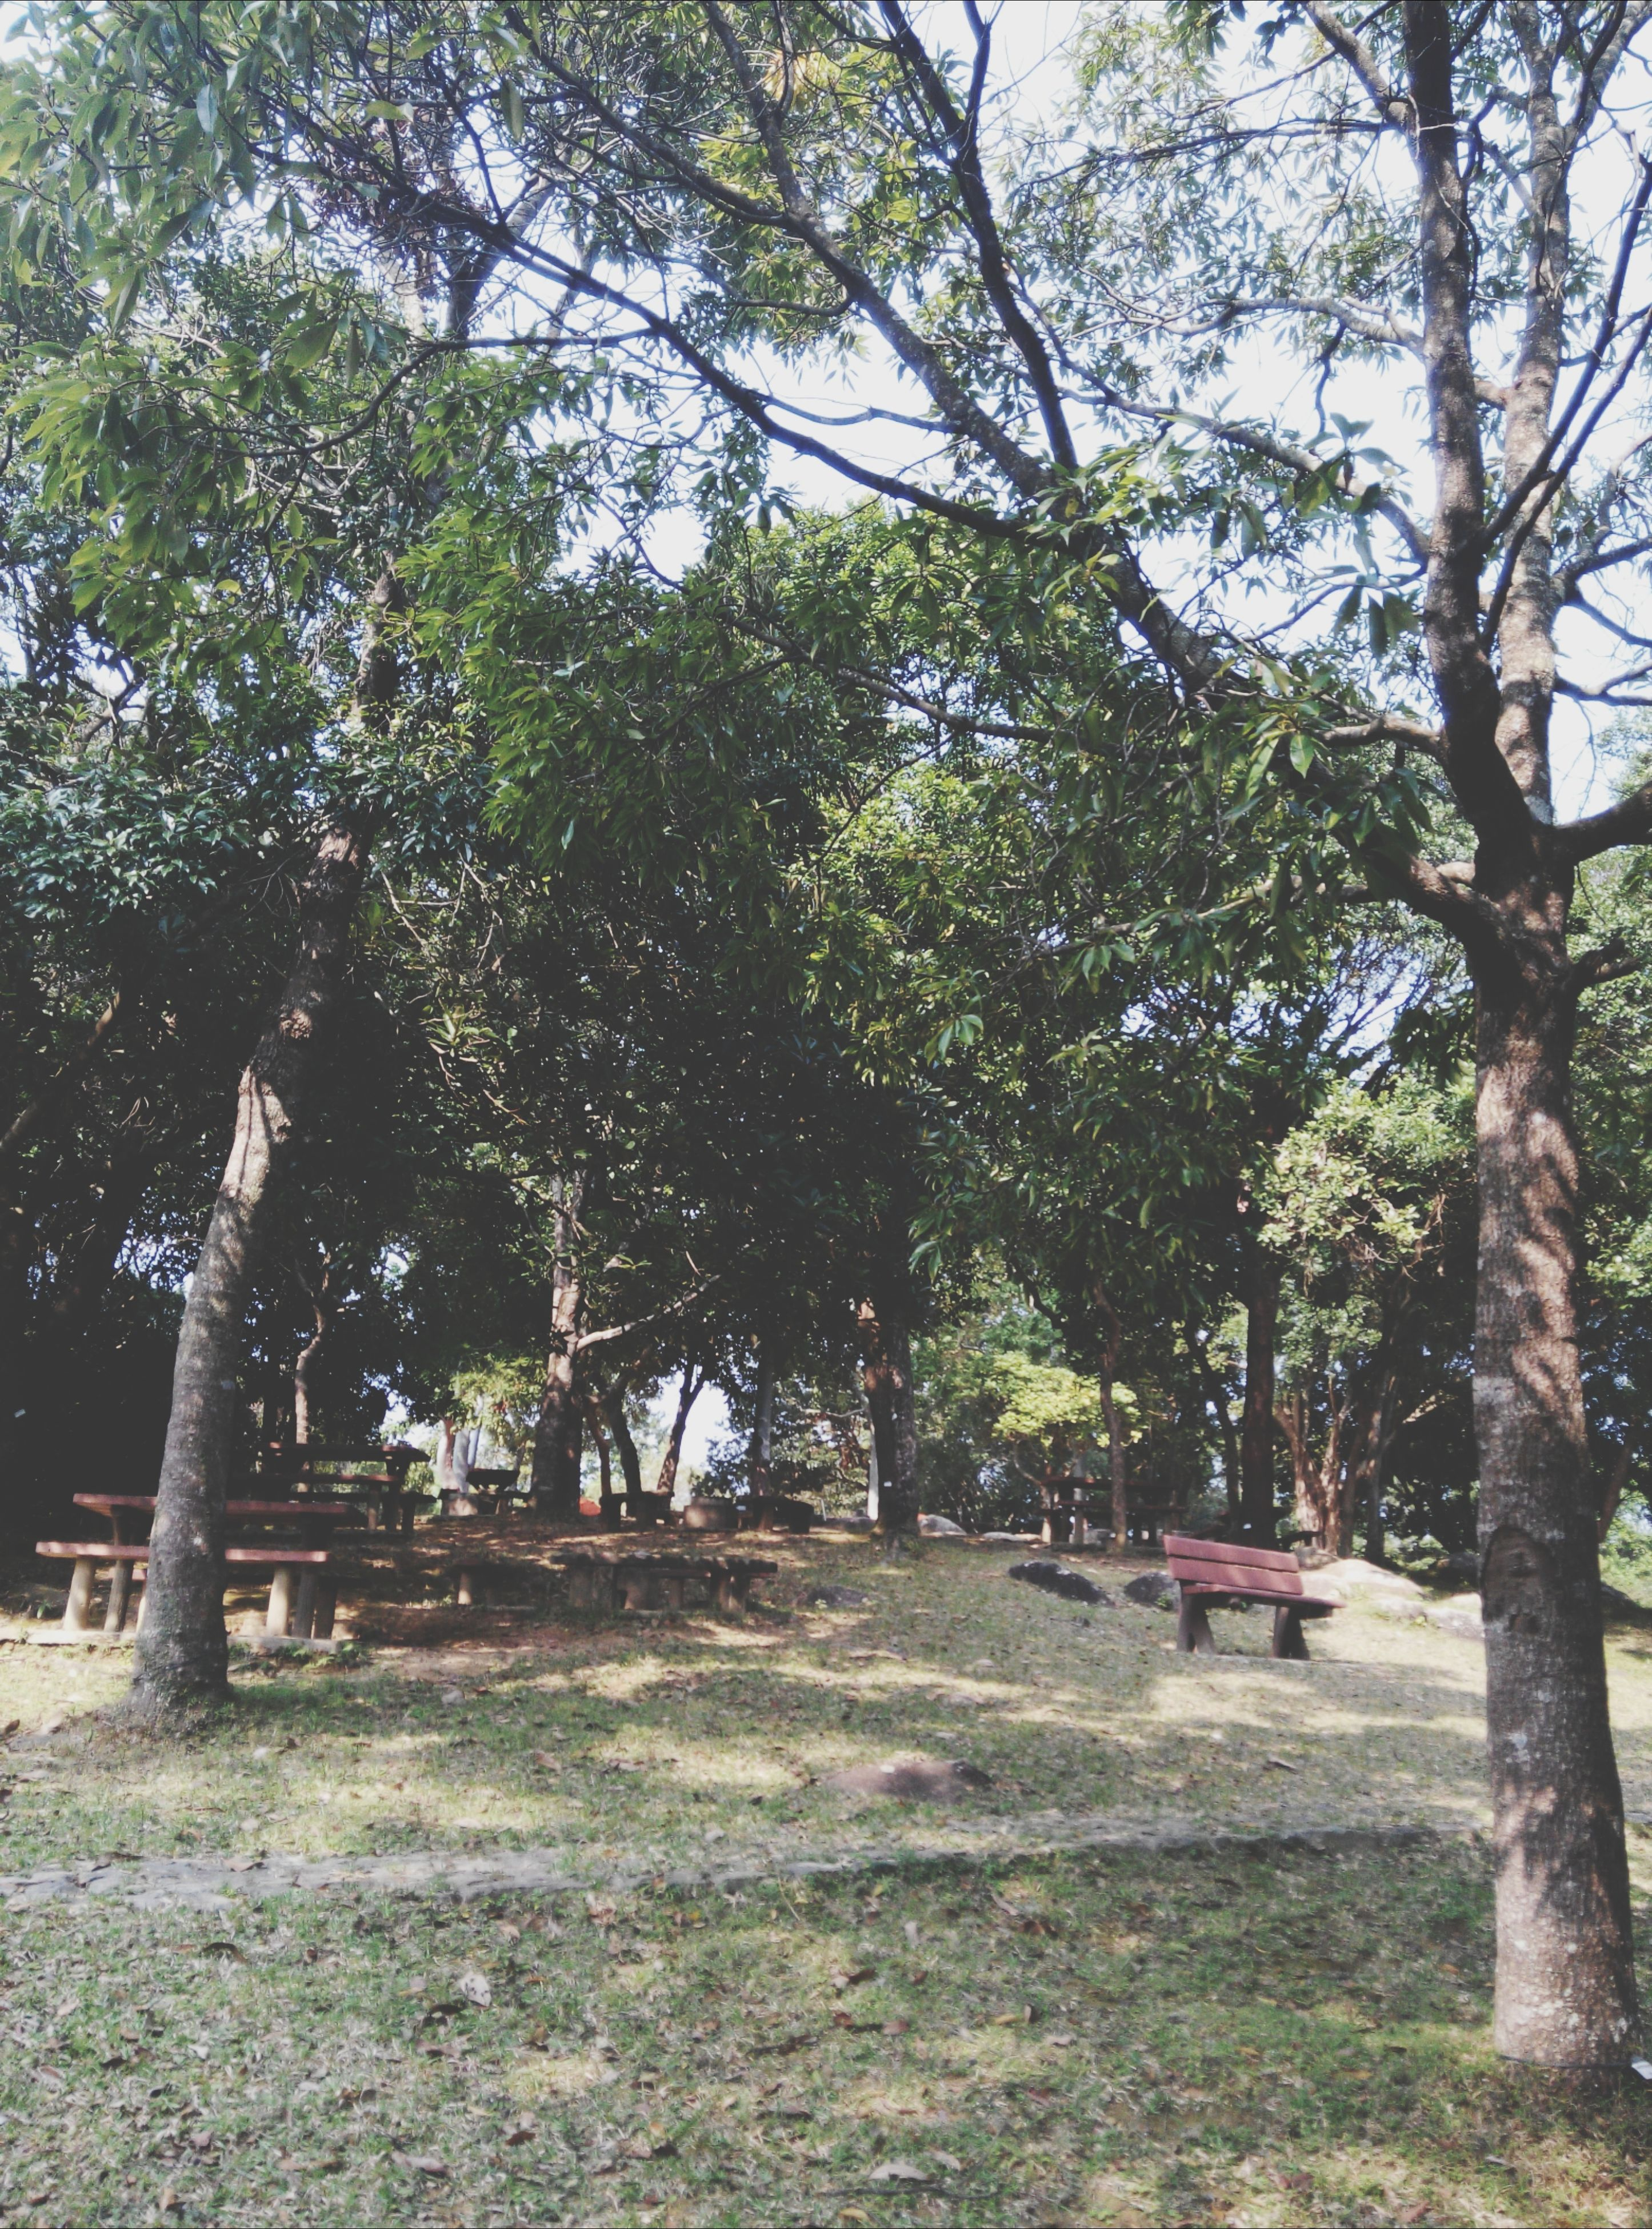 tree, growth, tranquility, tree trunk, branch, nature, tranquil scene, beauty in nature, park - man made space, green color, scenics, landscape, day, sunlight, sky, grass, outdoors, footpath, park, the way forward